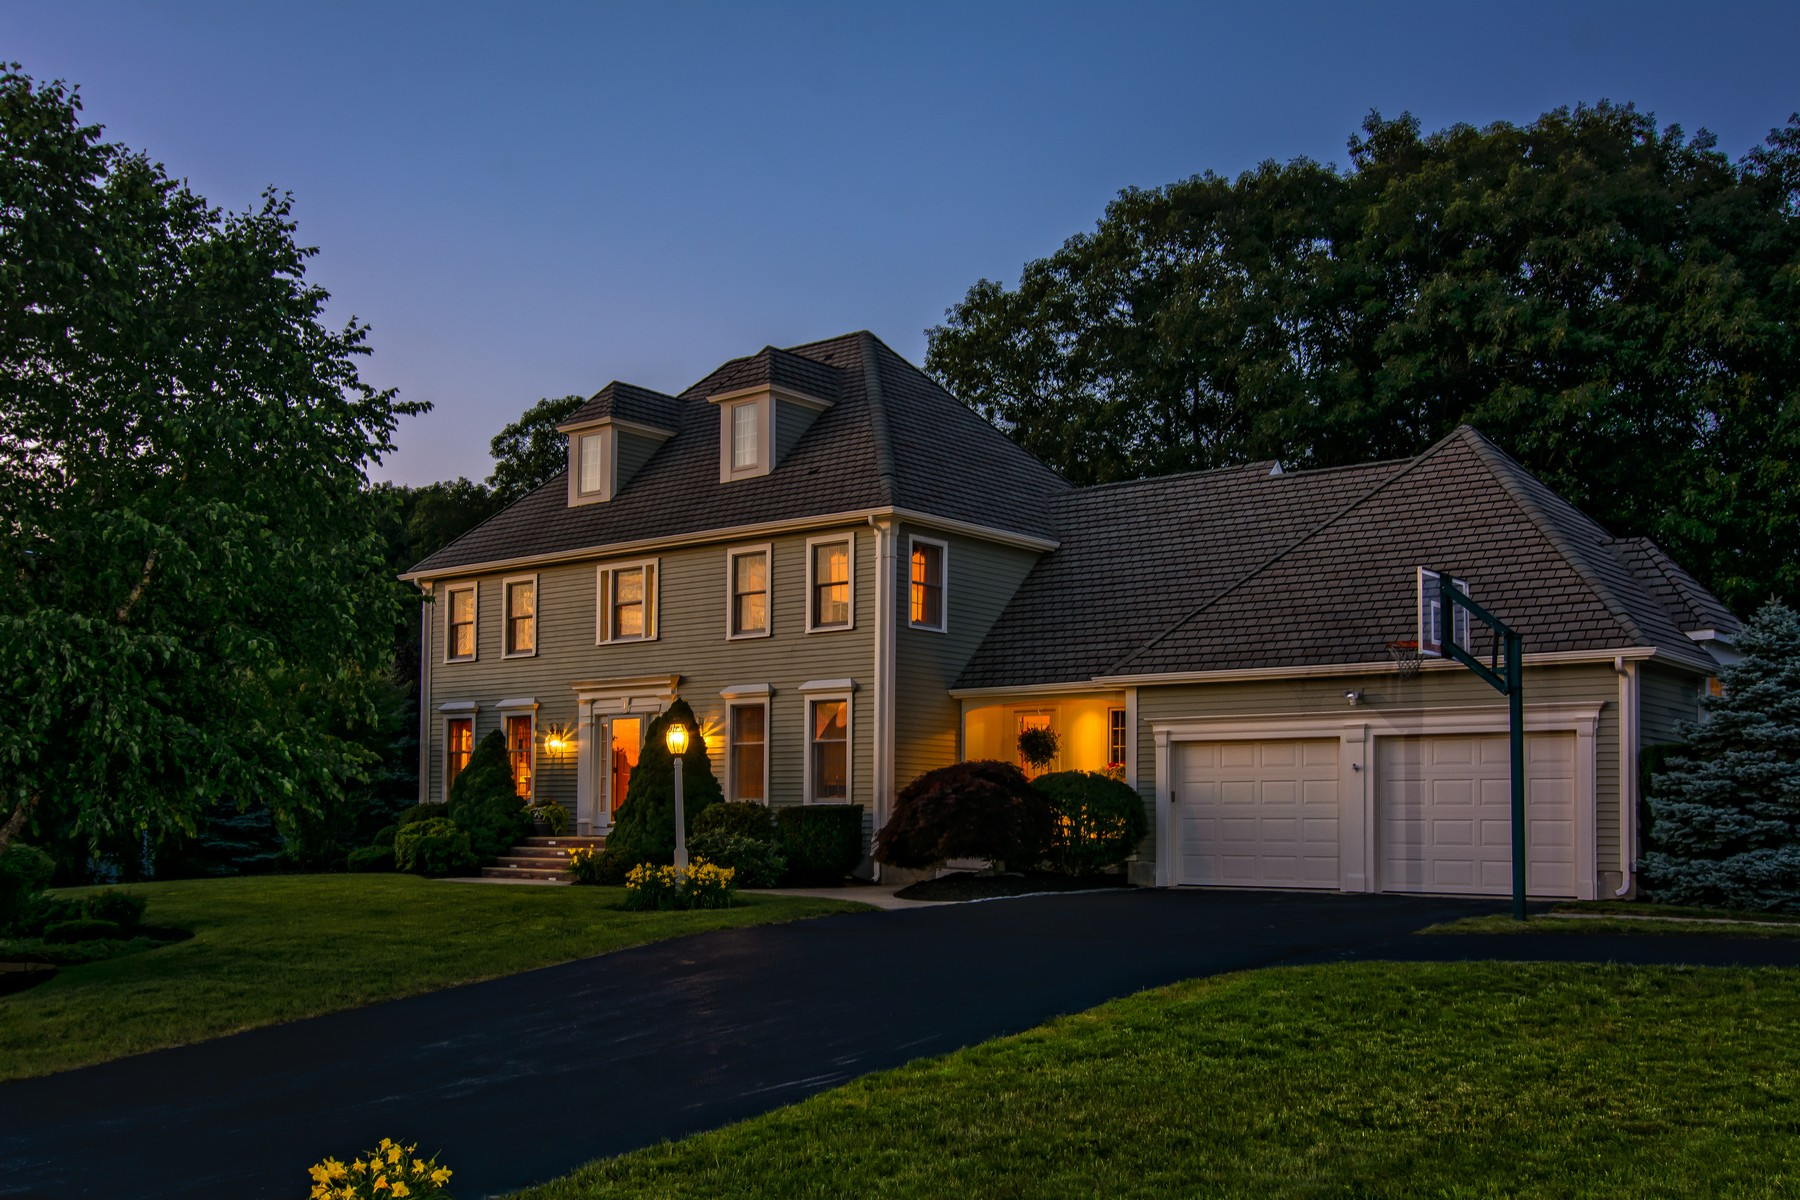 Single Family Home for Sale at Gorgeous Colonial - Fay Acres II 1 Benjamin Drive Westborough, Massachusetts, 01581 United States